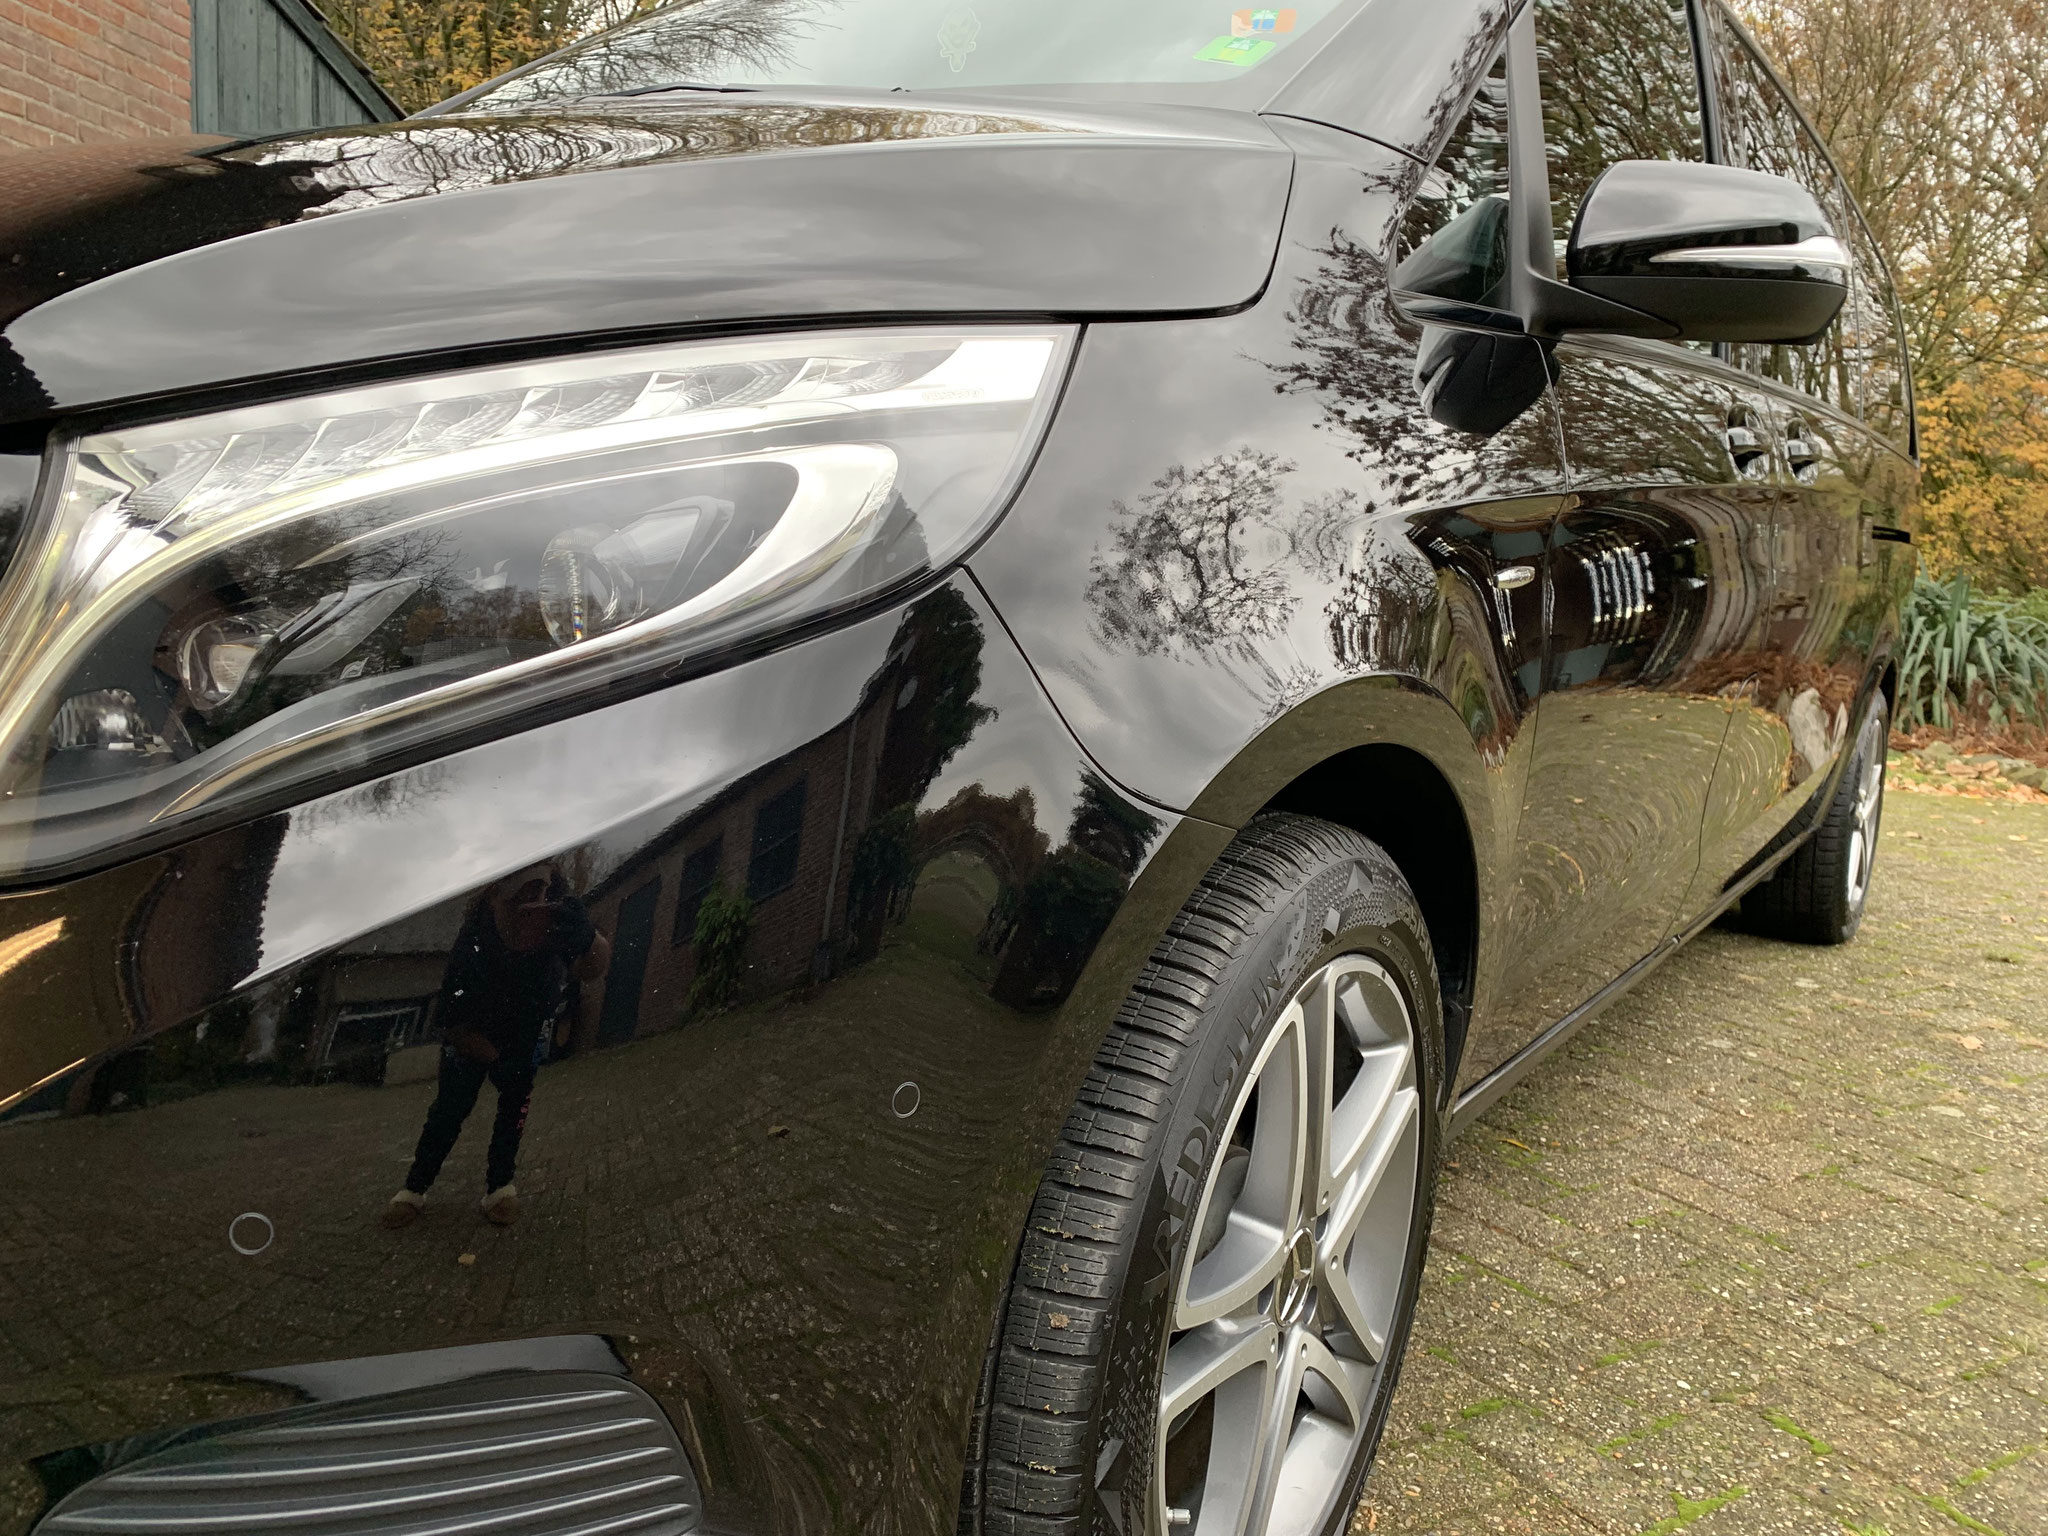 Mercedes V-Class 250D full detailing + winter wax